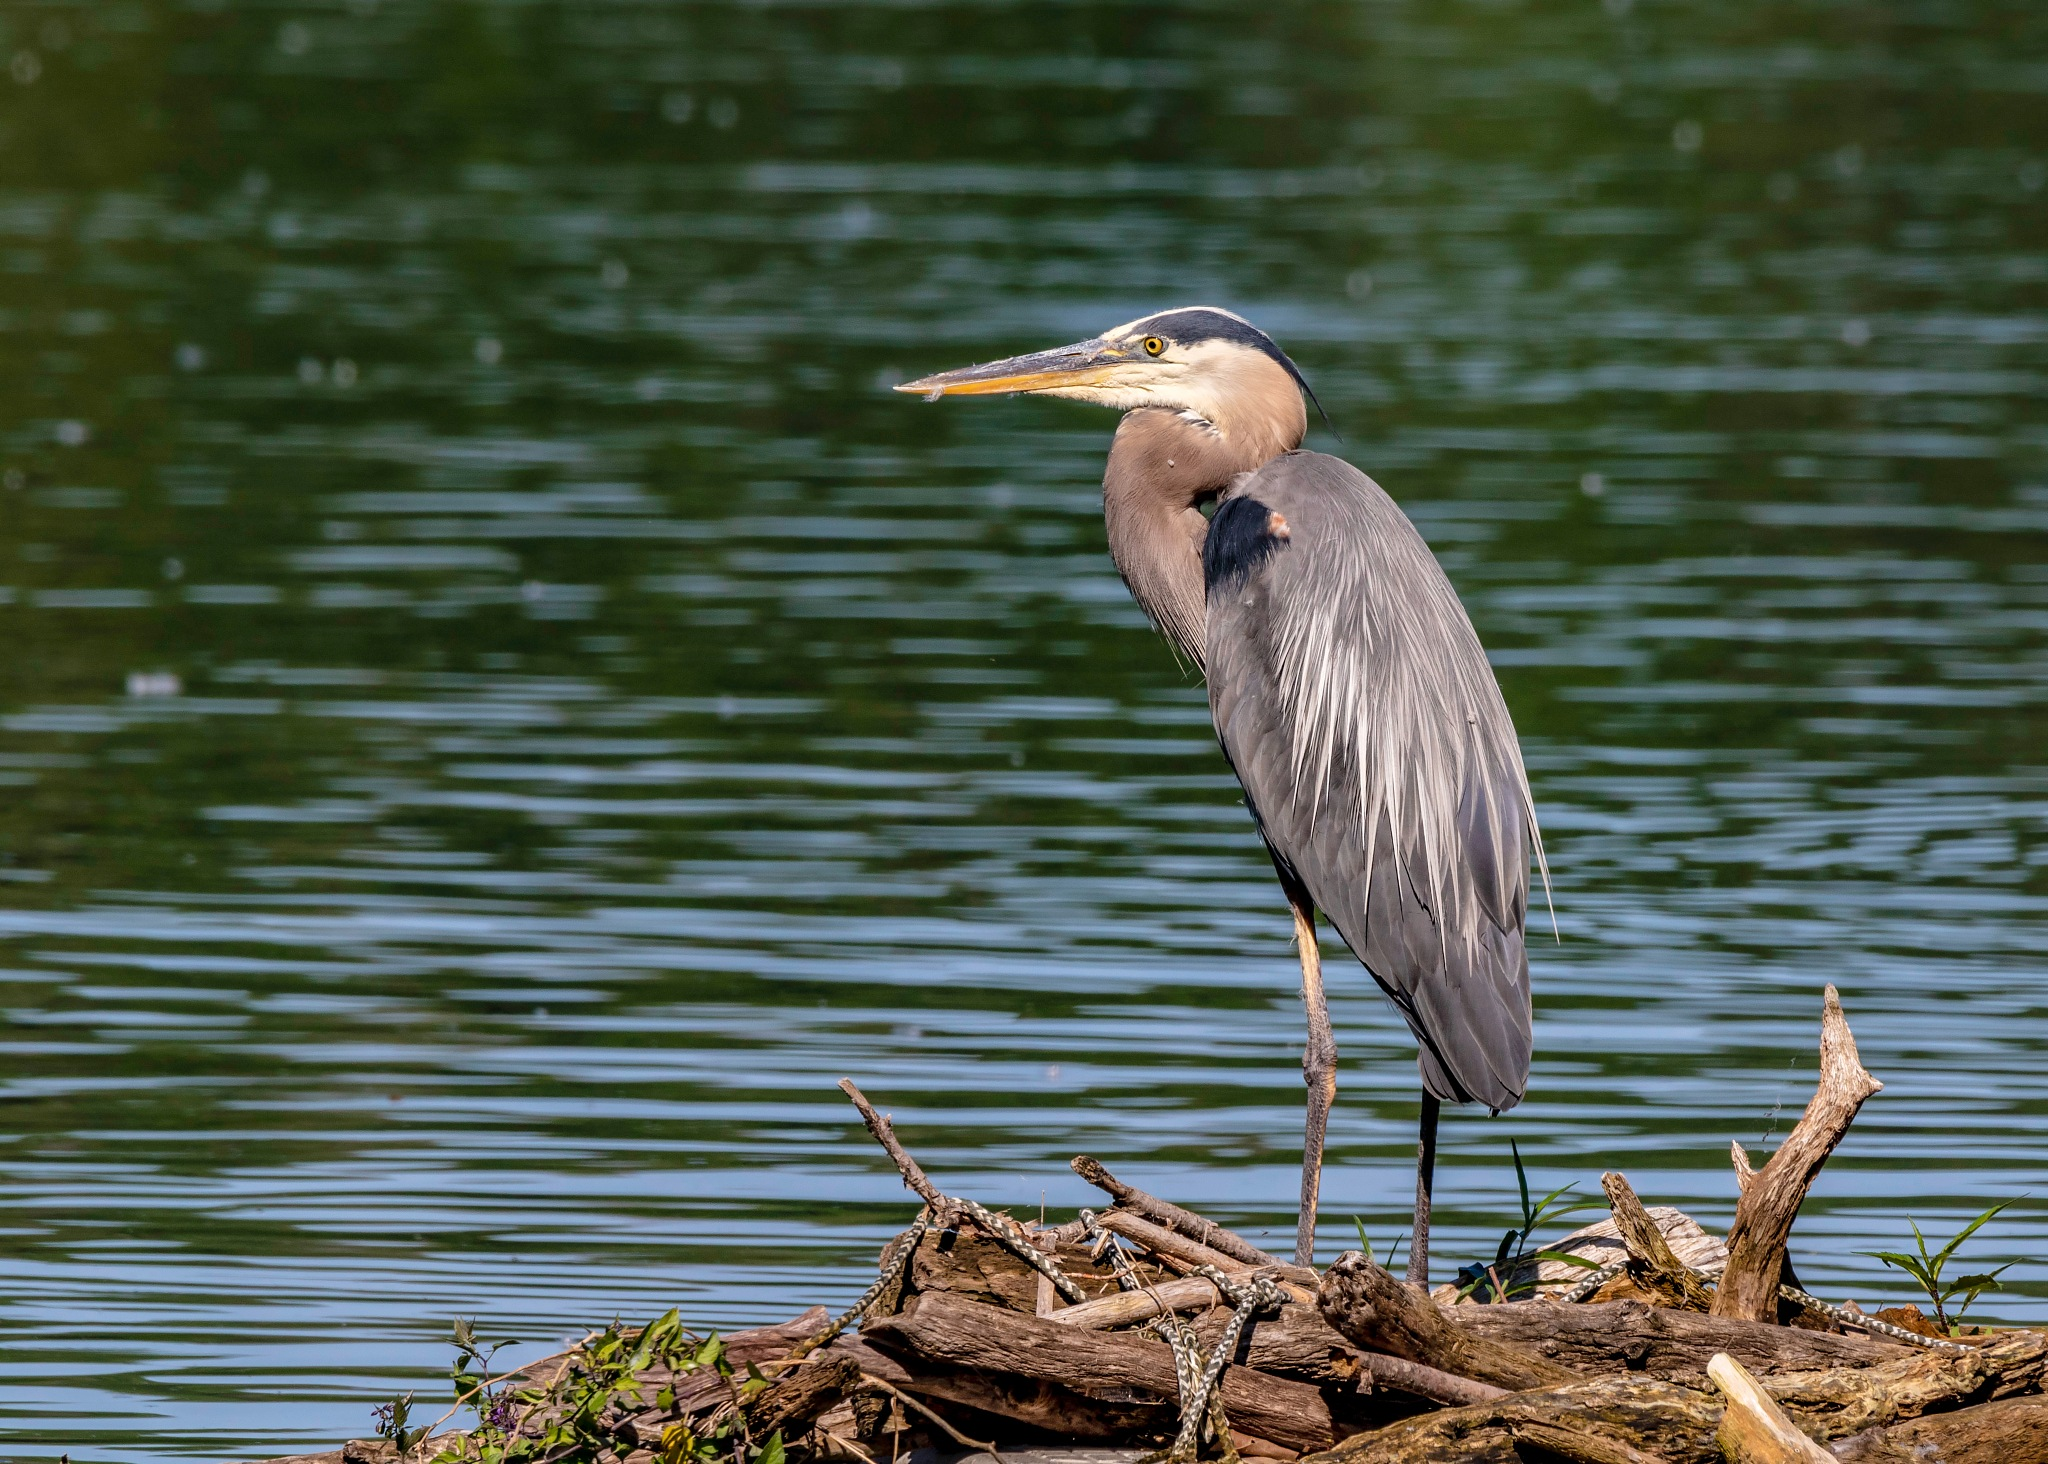 Great Blue Heron by will139kh